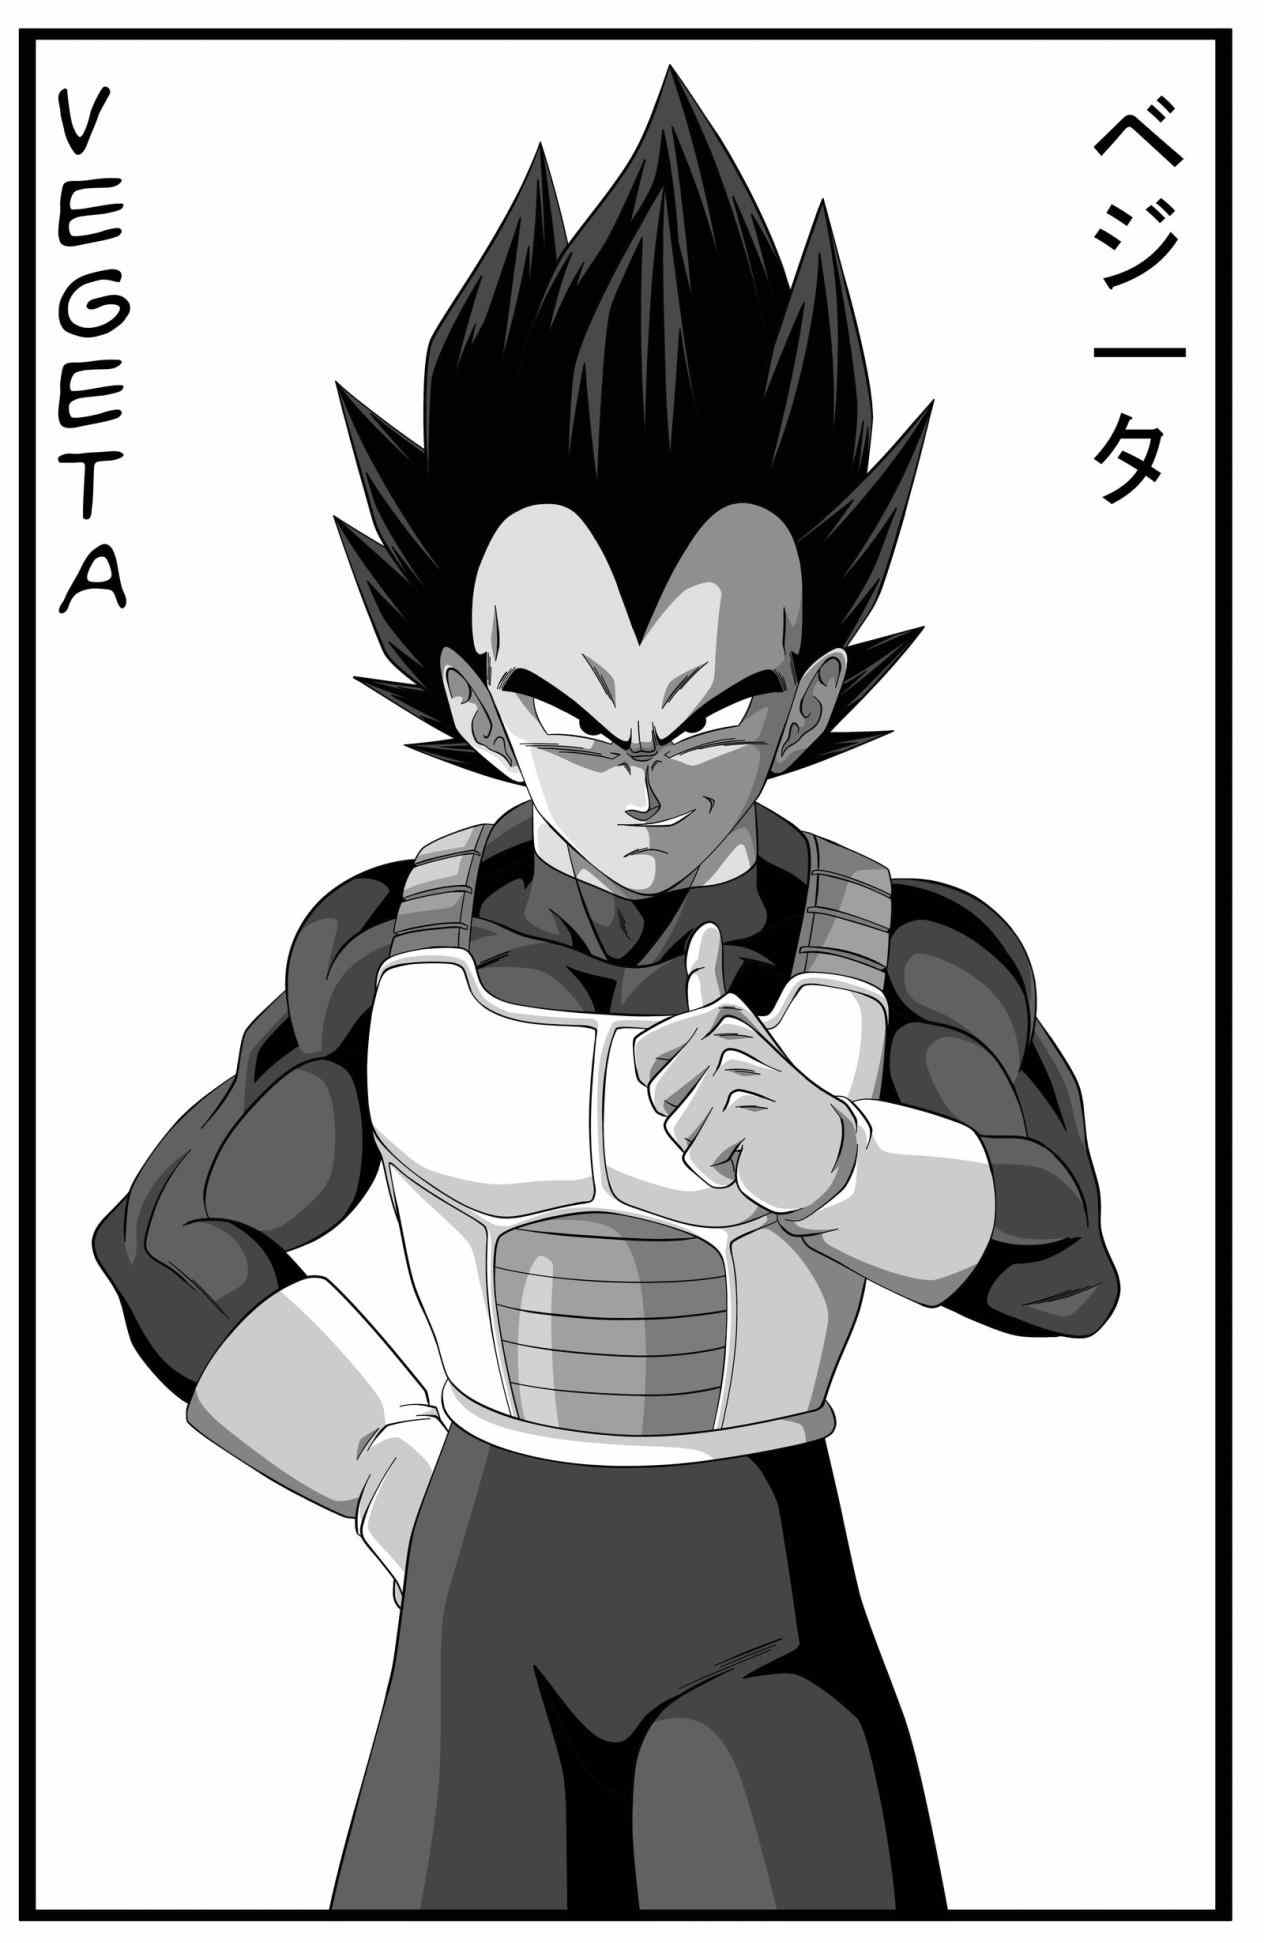 Vegeta Black And White Wallpapers Top Free Vegeta Black And White Backgrounds Wallpaperaccess